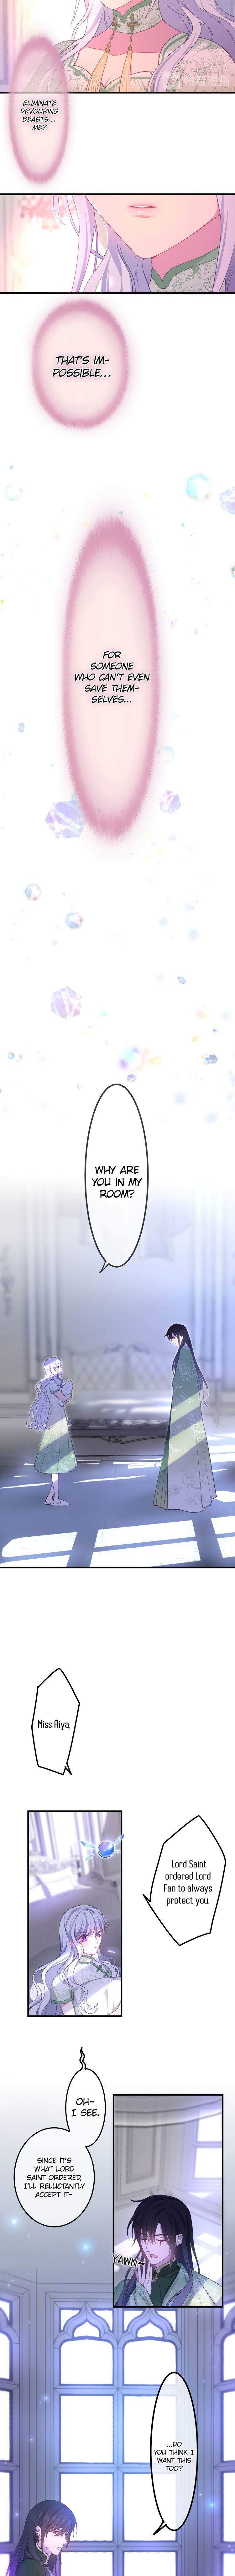 Monster: The Quiet Beast'S Warmth Chapter 3 page 7 - Mangakakalots.com